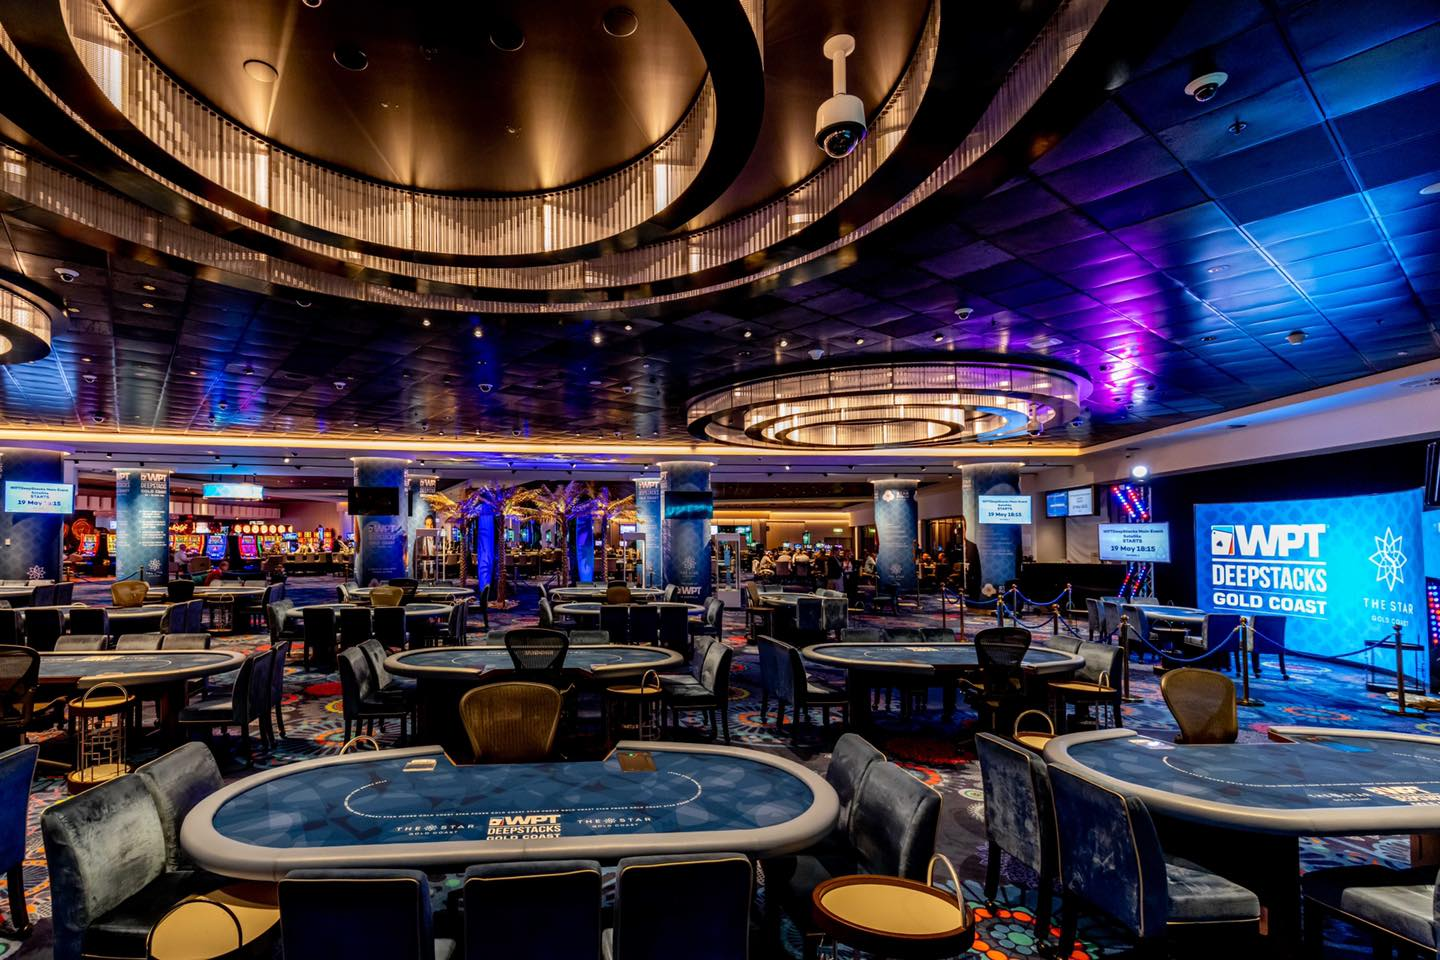 WPTDS Gold Coast starts tomorrow – Events now approved as Full Ring!